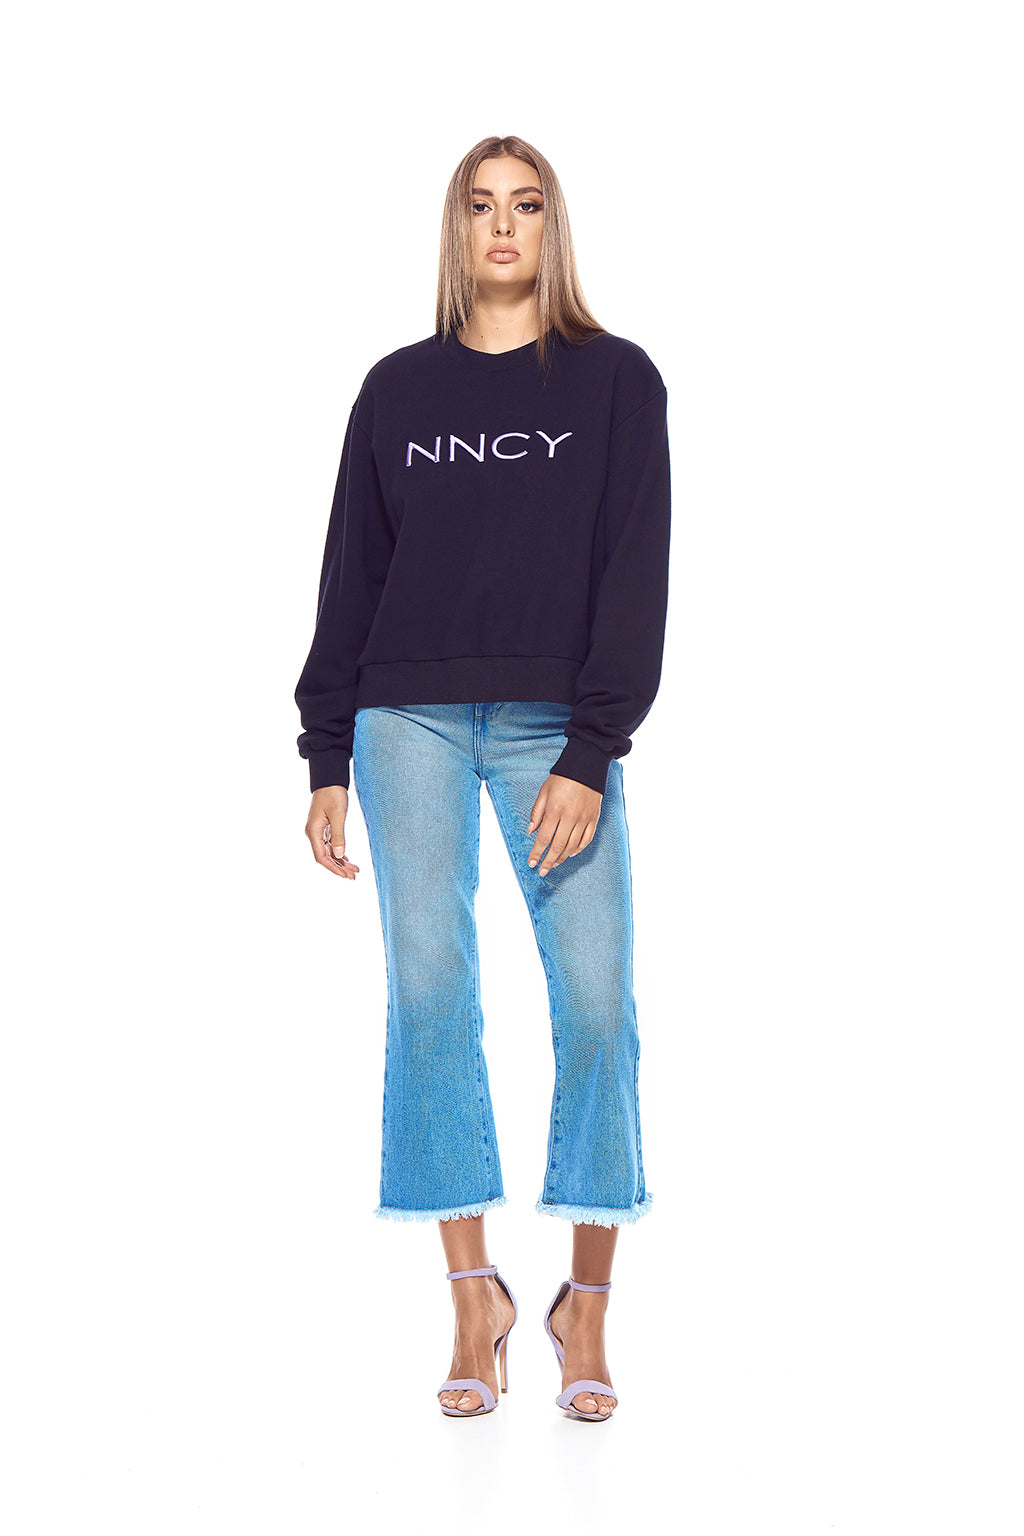 NNCY Oversized Logo Sweater - Black